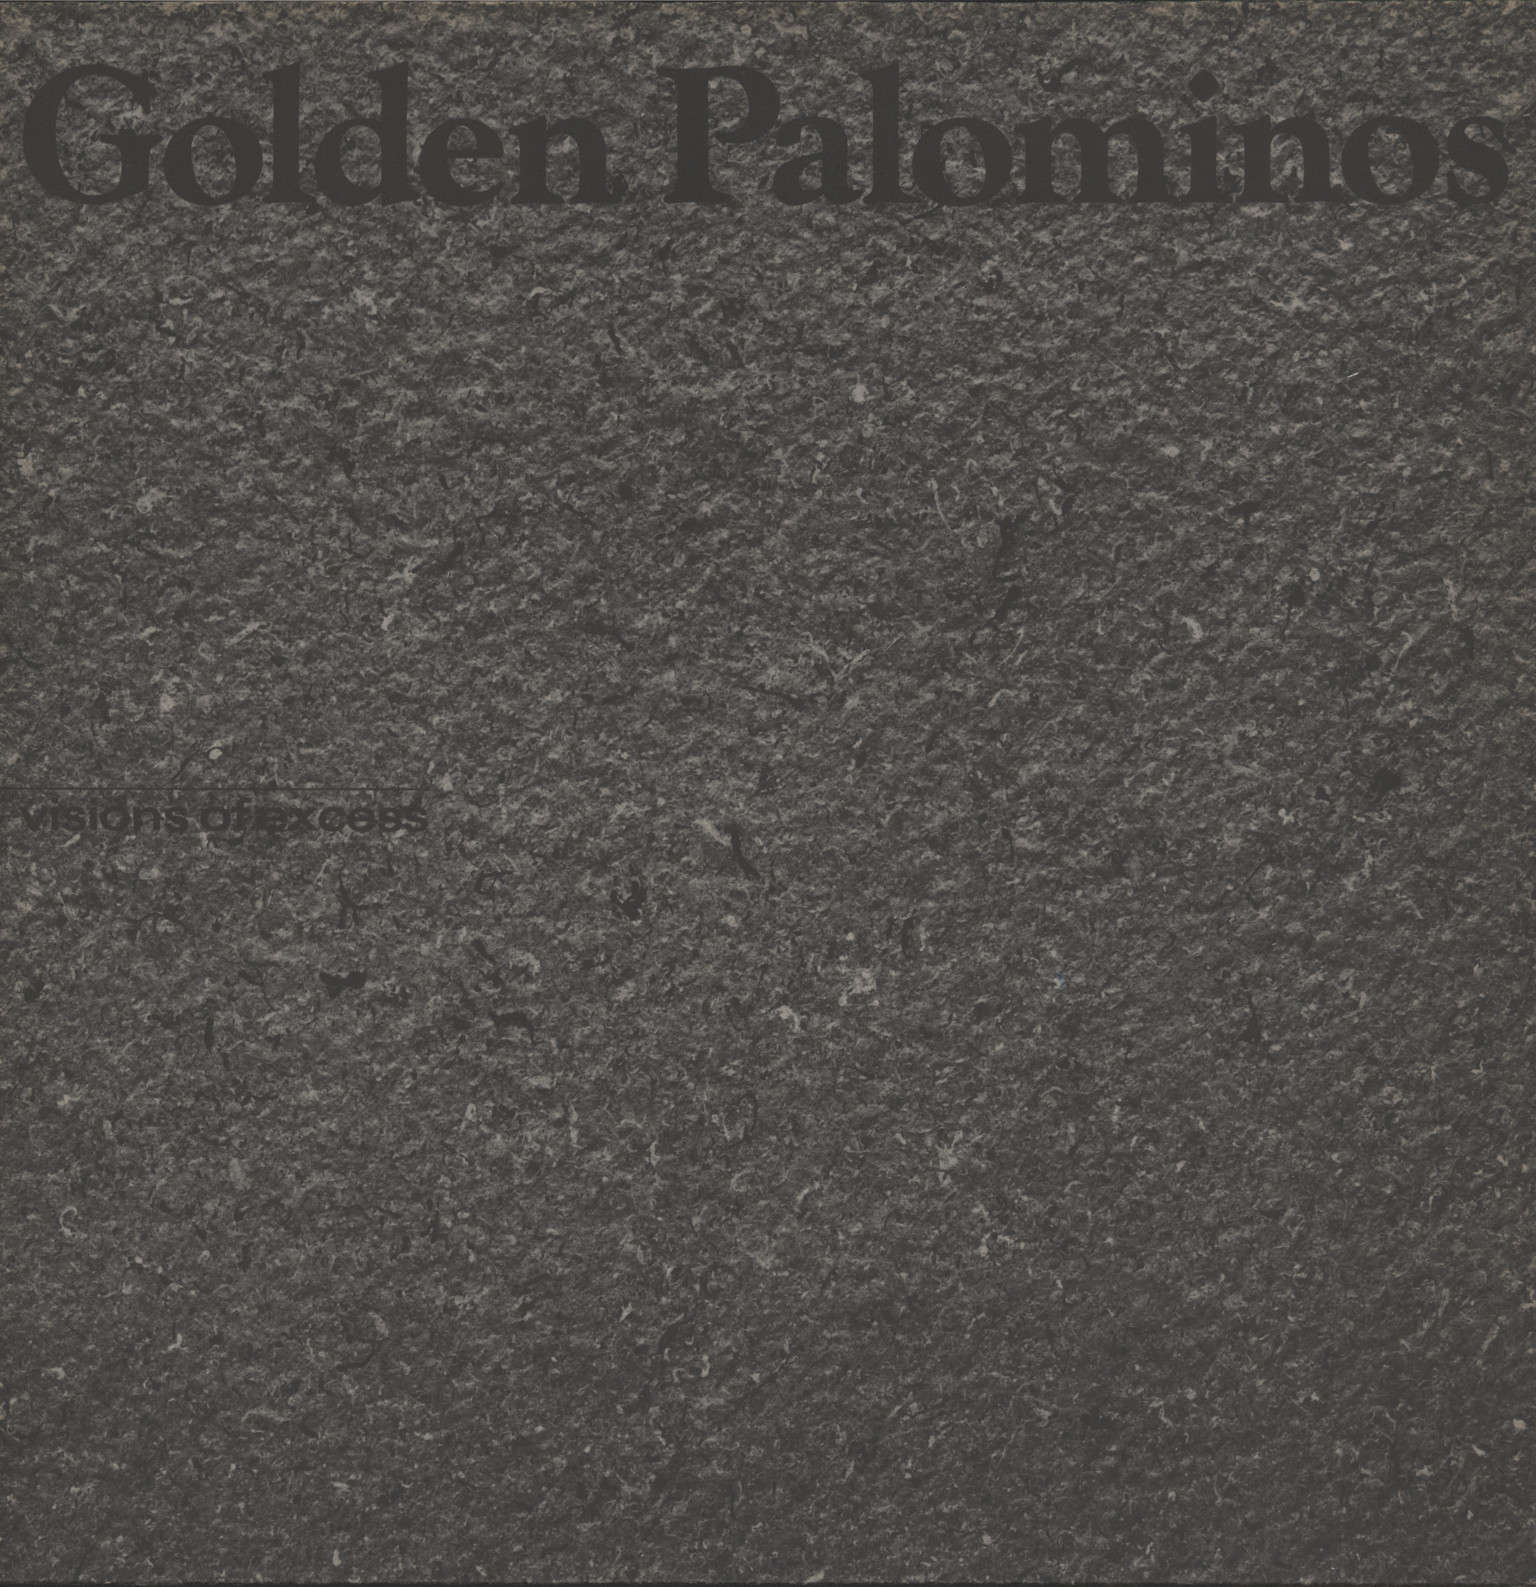 Golden Palominos: Visions Of Excess, LP (Vinyl)